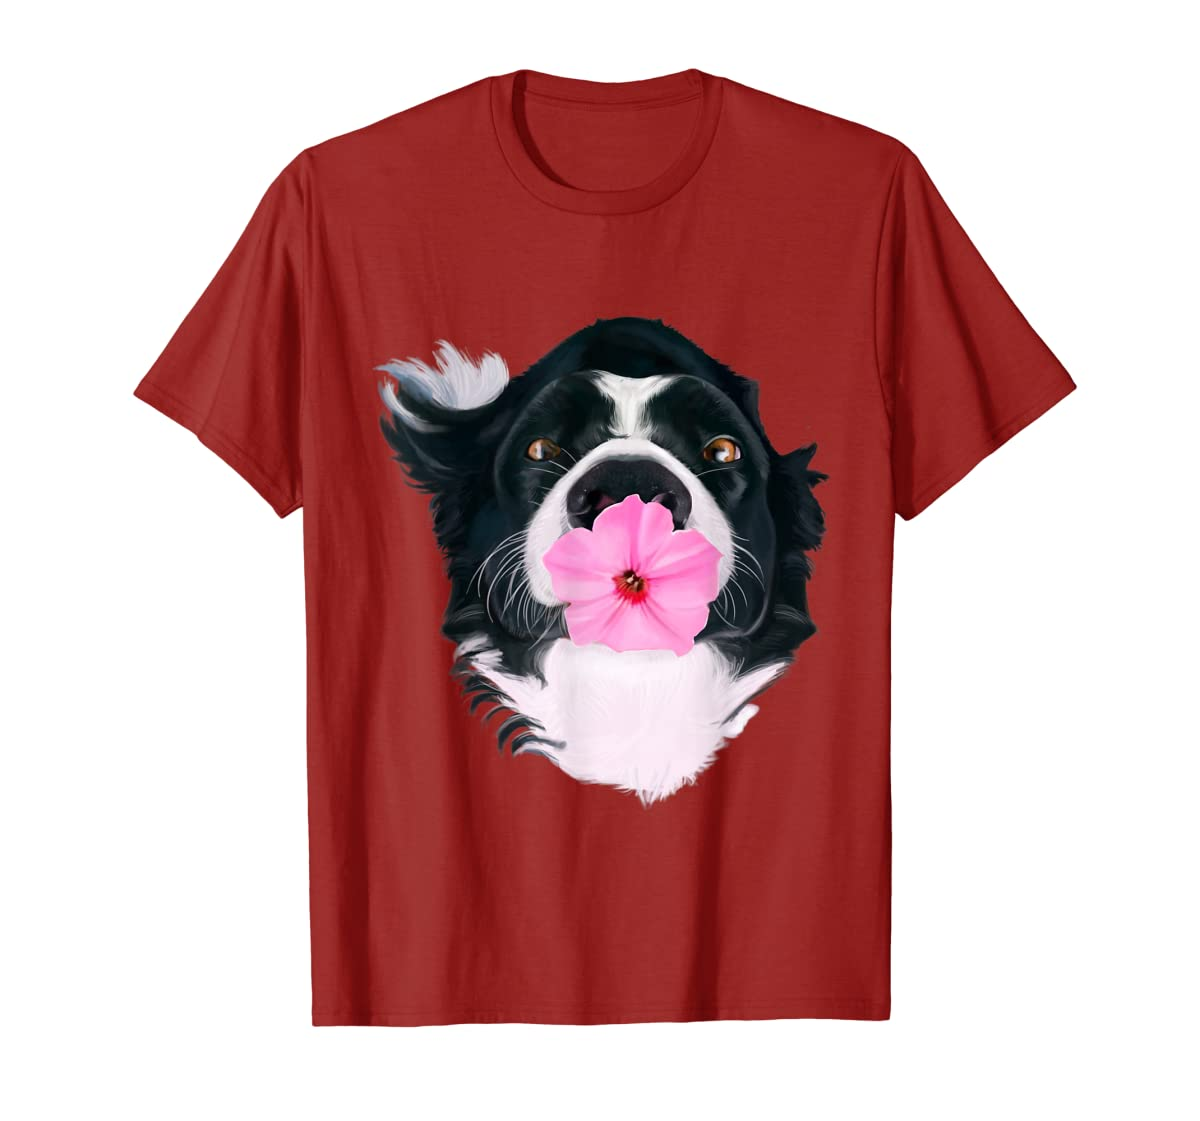 Border Collie Sweet Dog T-Shirt Dogs Tee Shirt Gifts-Men's T-Shirt-Red